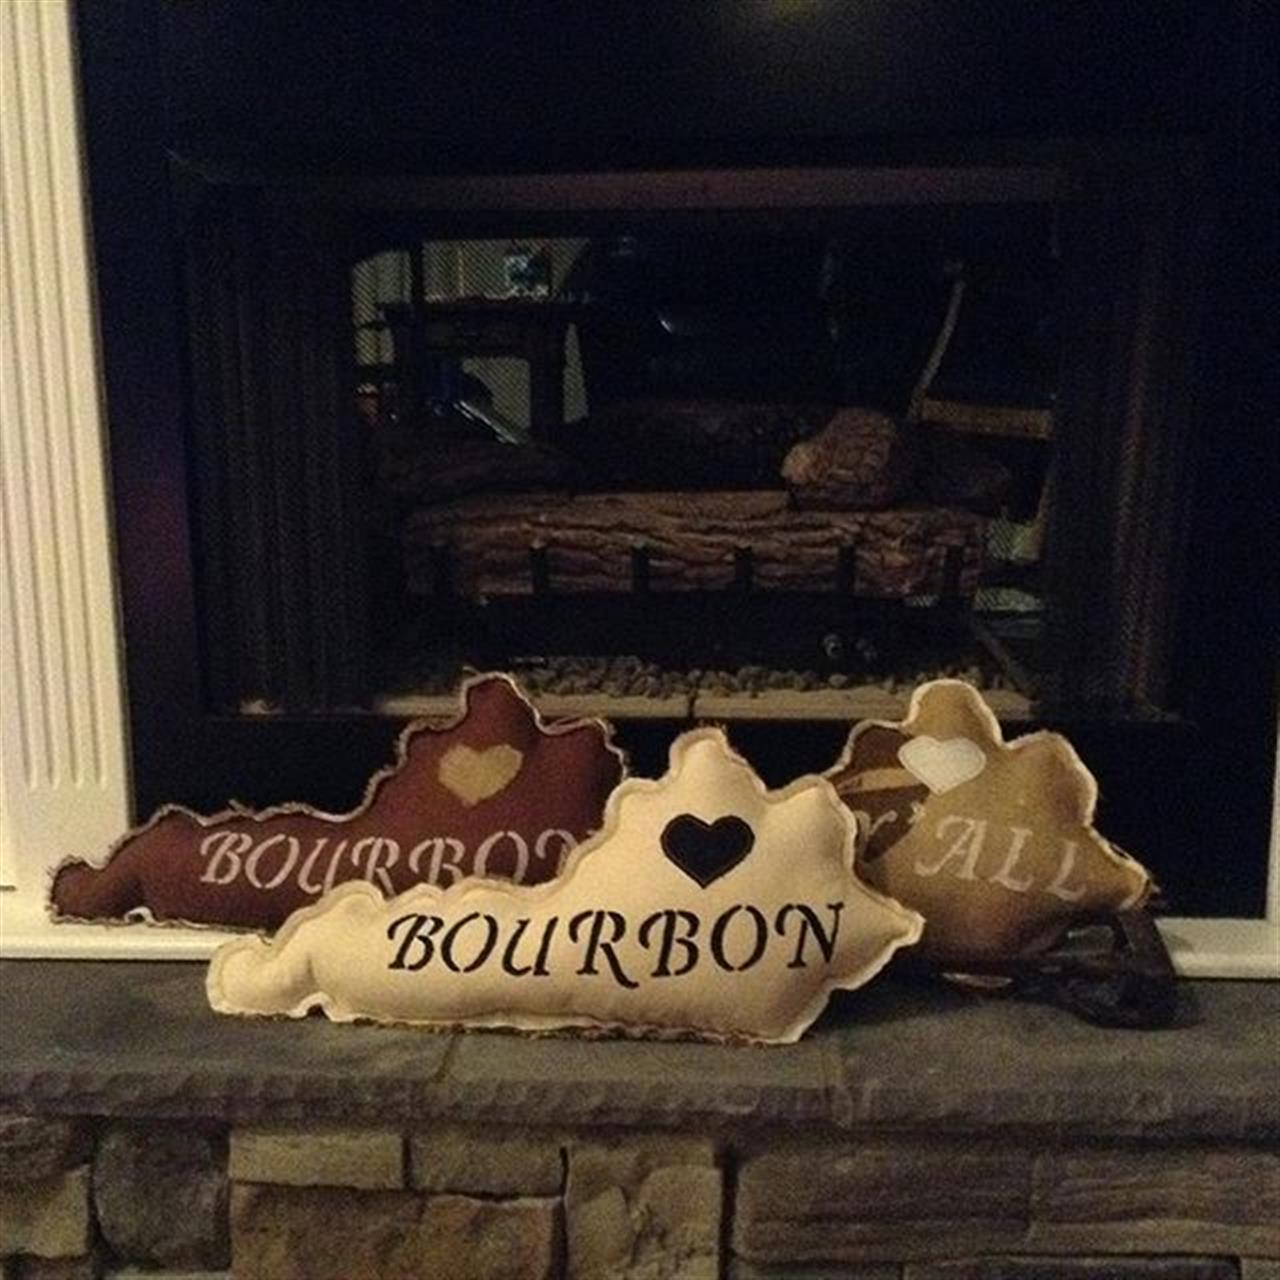 Thanks to Samantha Jean Moore for delivering these great pillows tonight. Get some local stuff Y'all.